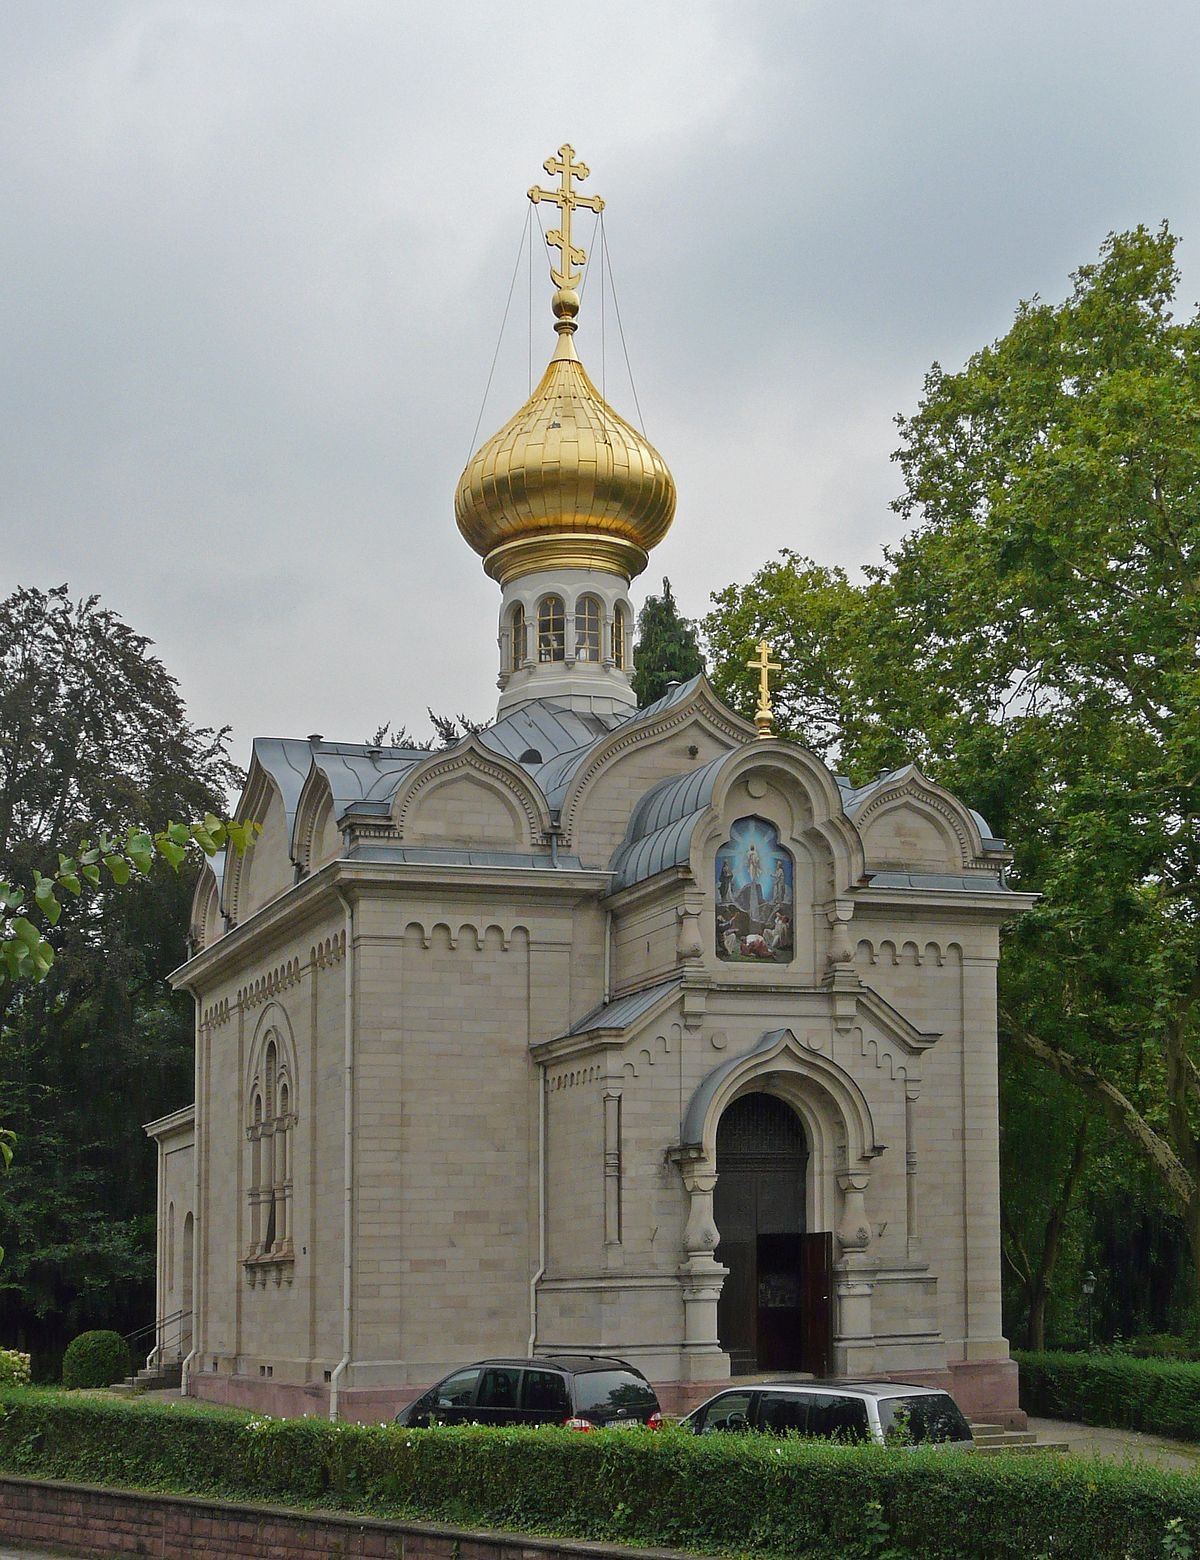 russische kirche baden baden wikipedia. Black Bedroom Furniture Sets. Home Design Ideas